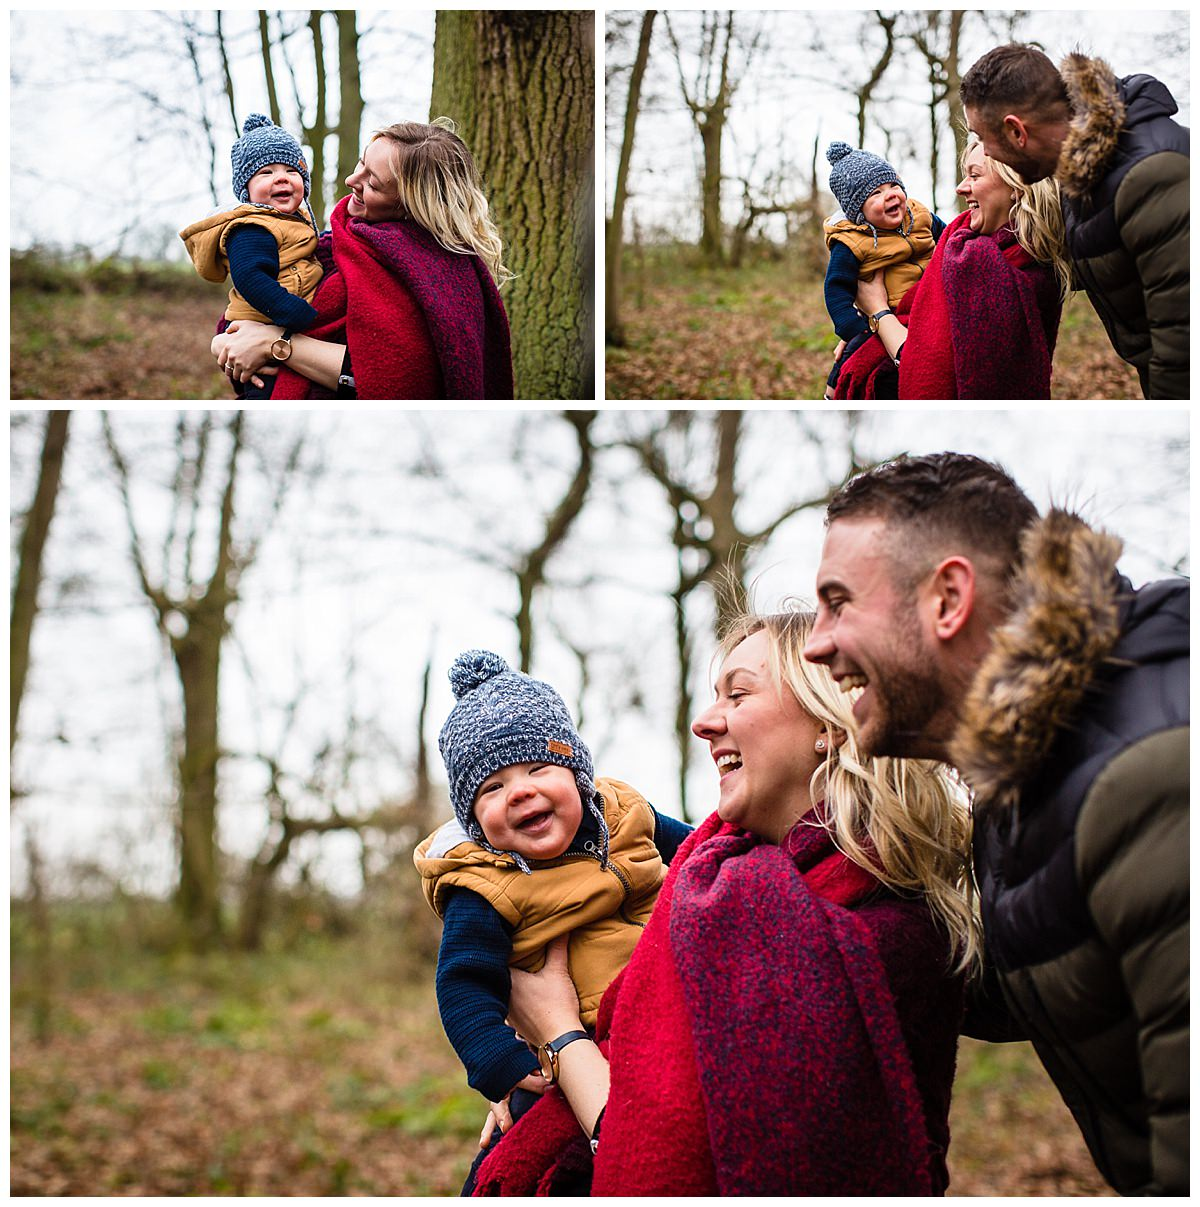 mum holding baby and looking at her son adoringly with dad by her side